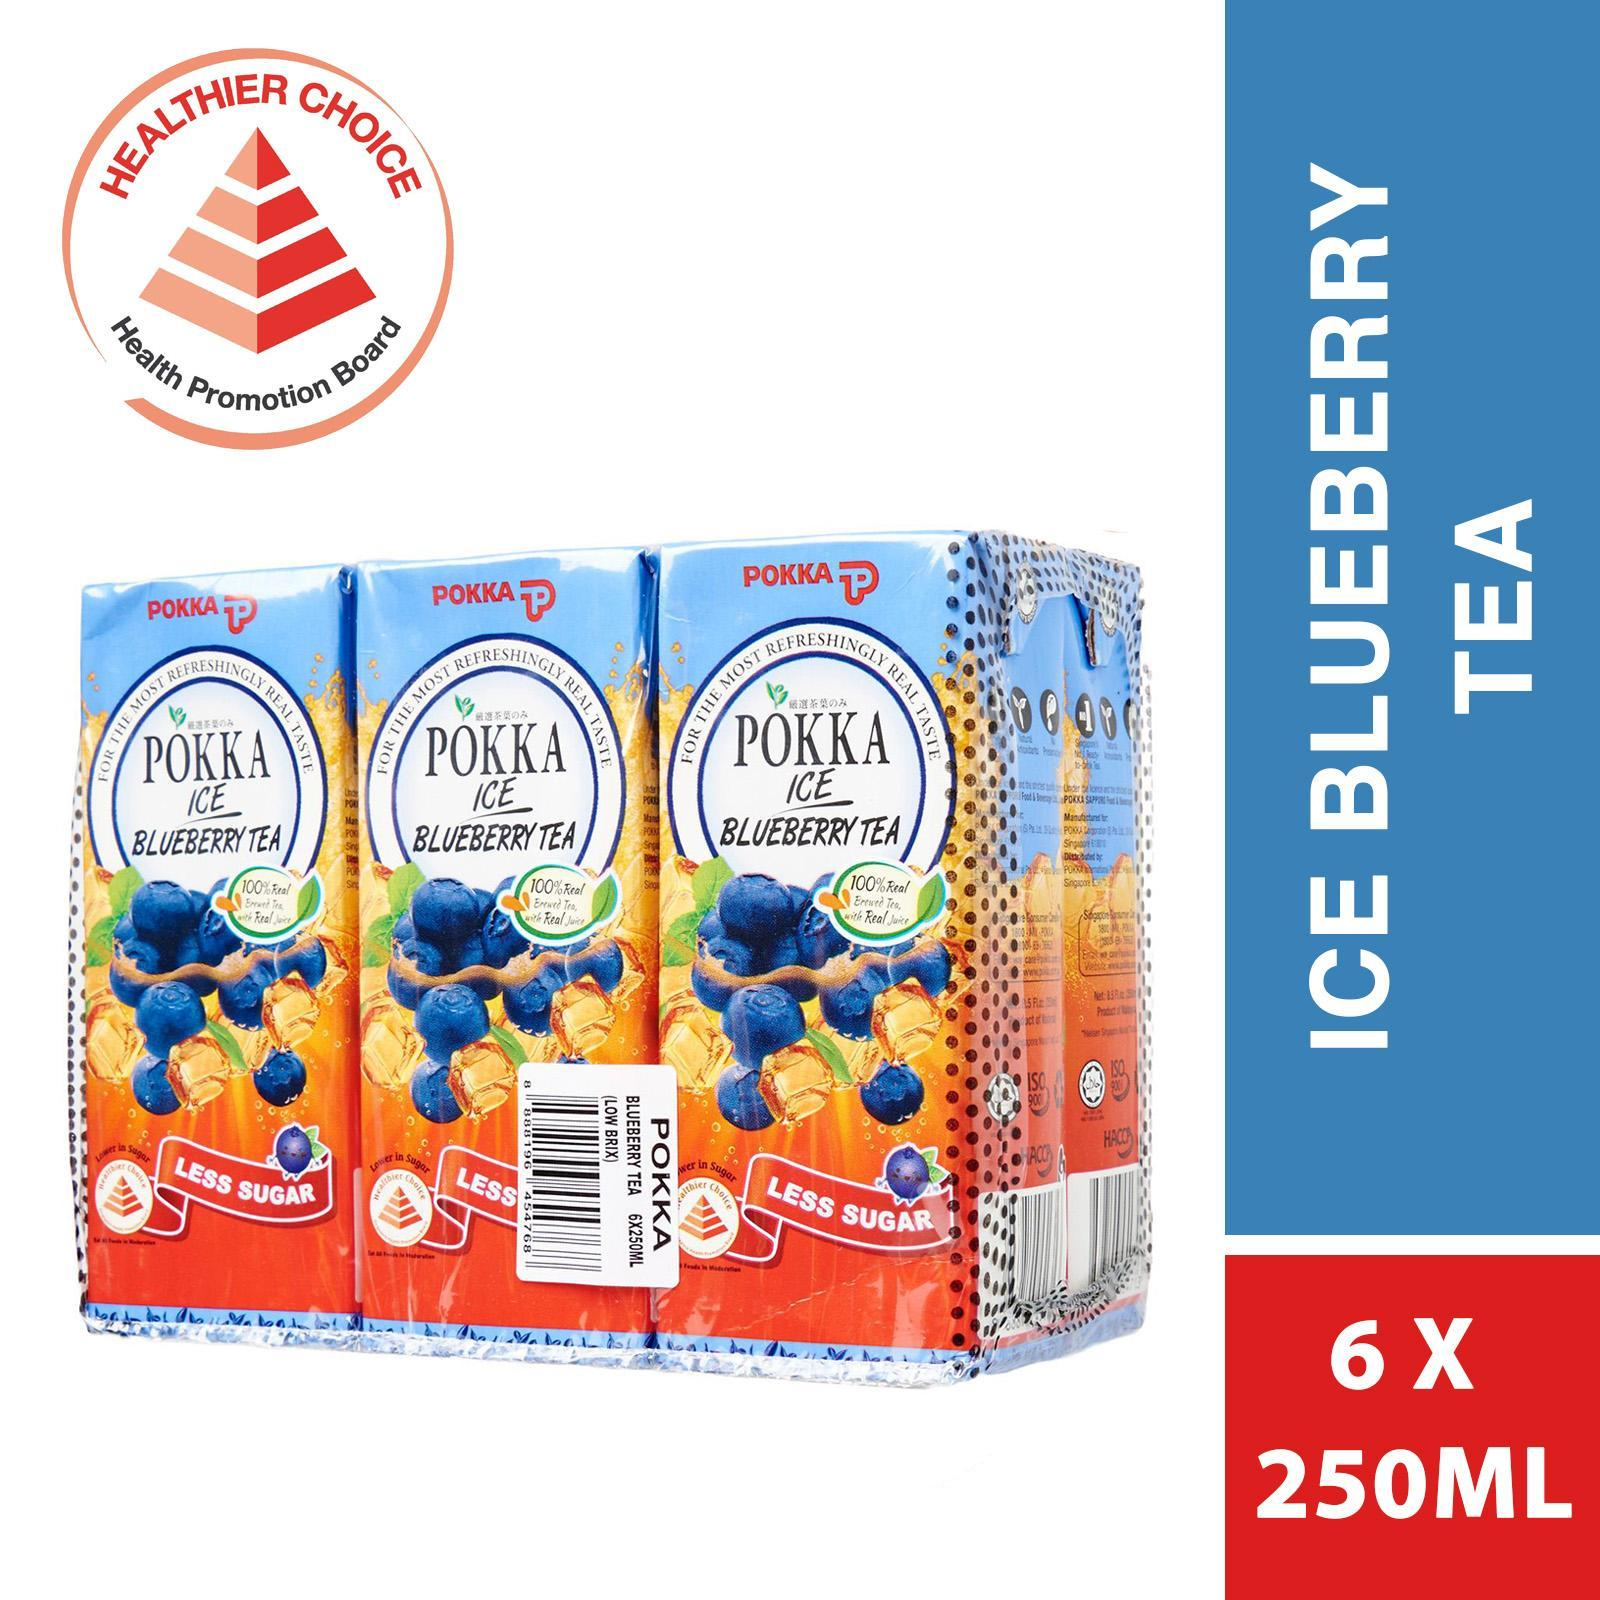 POKKA Ice Lemon Tea 6sX250ml